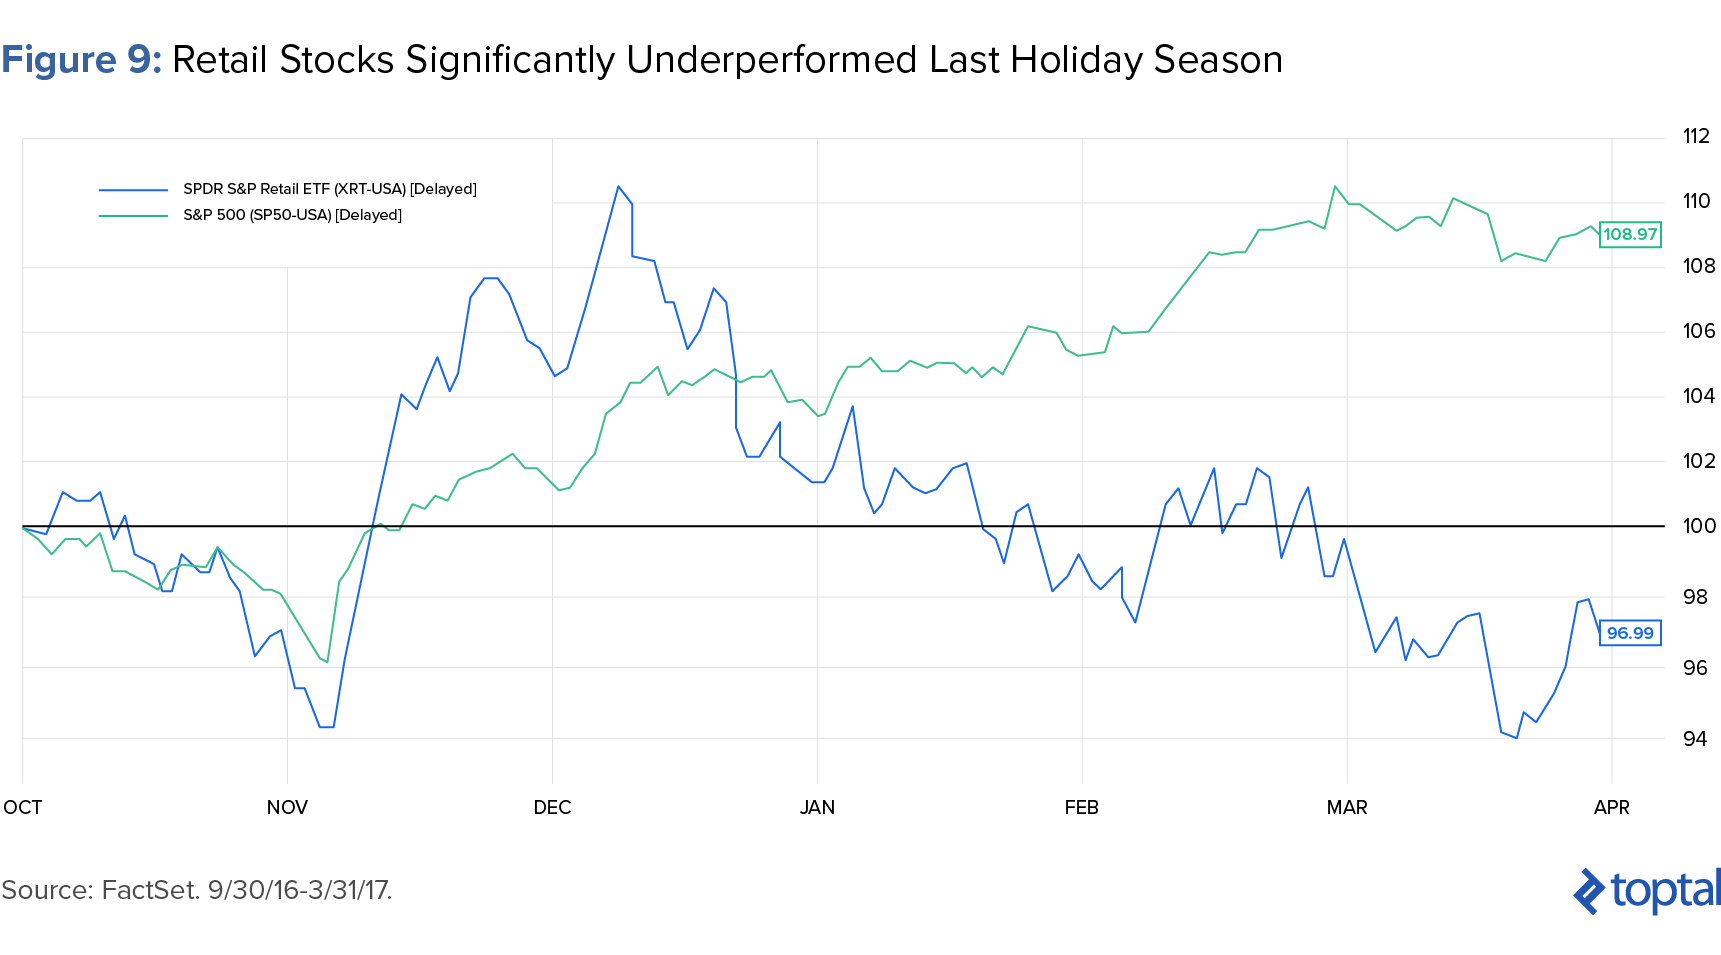 Figure 9: Retail Stocks Significantly Underperformed Last Holiday Season